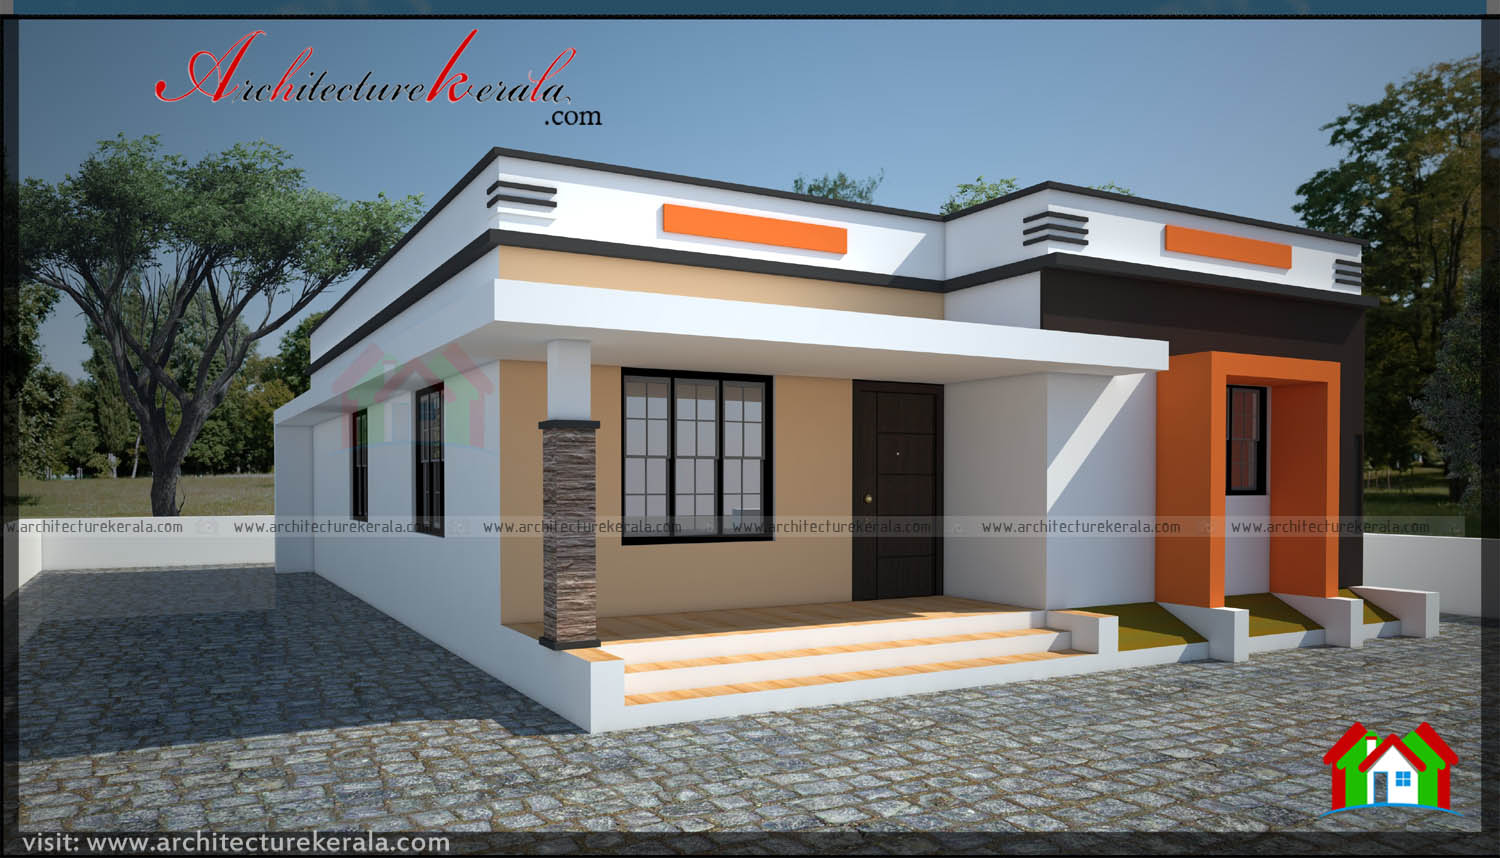 600 square feet simple contemporary home architecture kerala for 600 square feet house